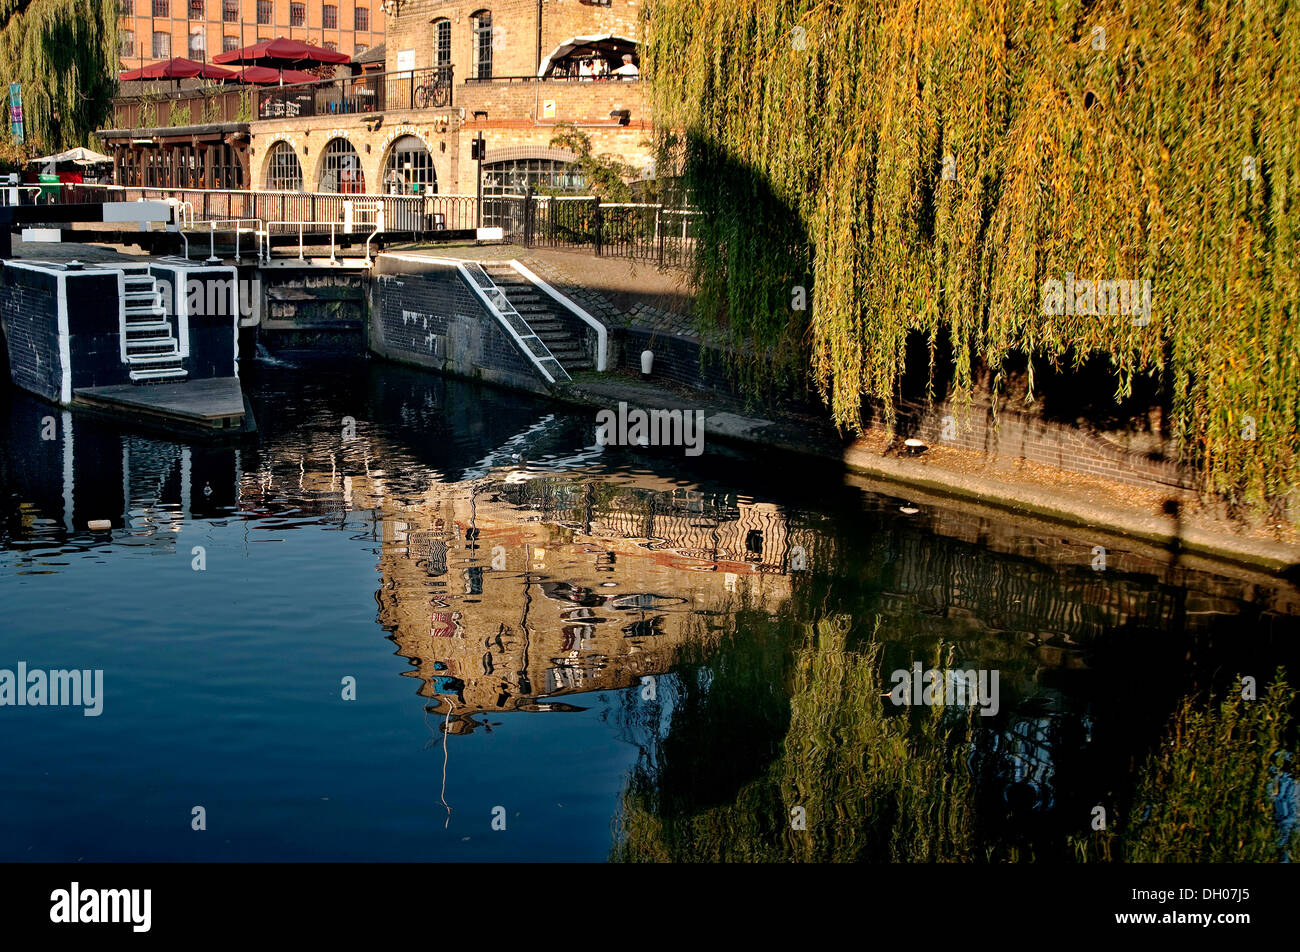 Camden Lock, Regents canal lock number 1,reflections in water by tow path by Camden Market - Stock Image